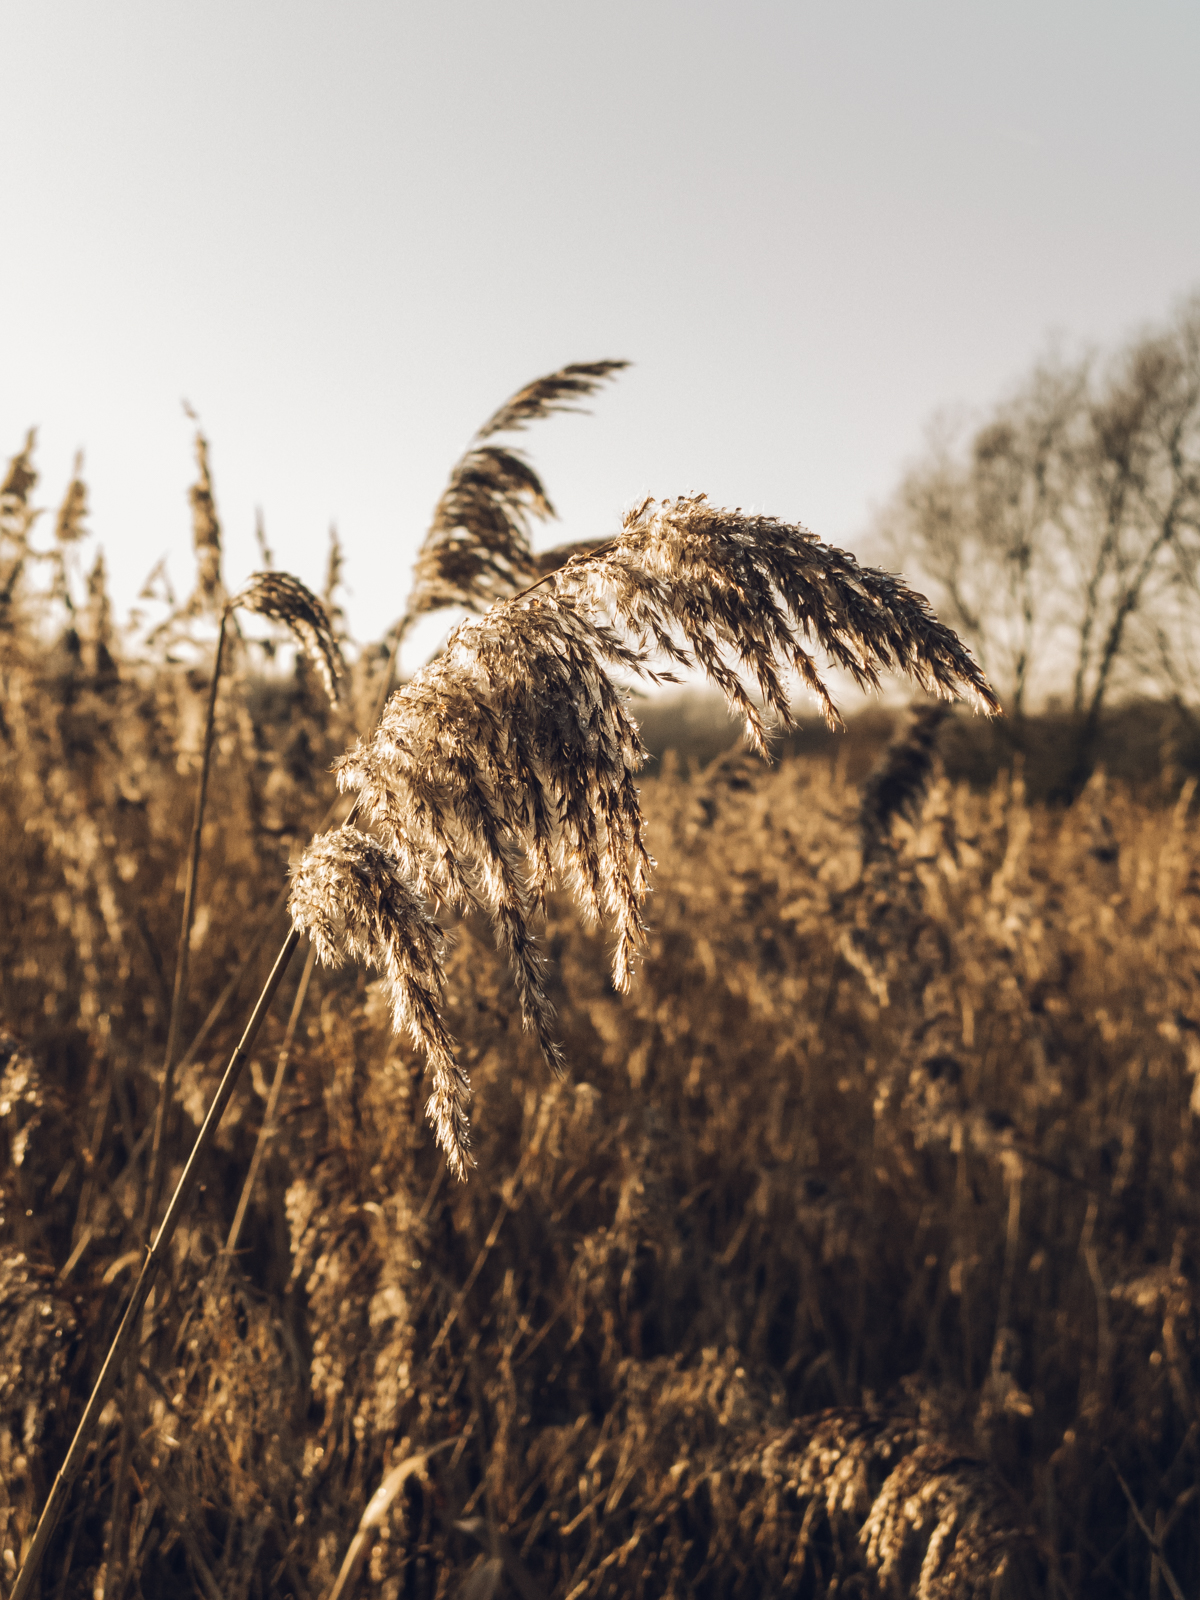 Winter sun on pond-side rushes.